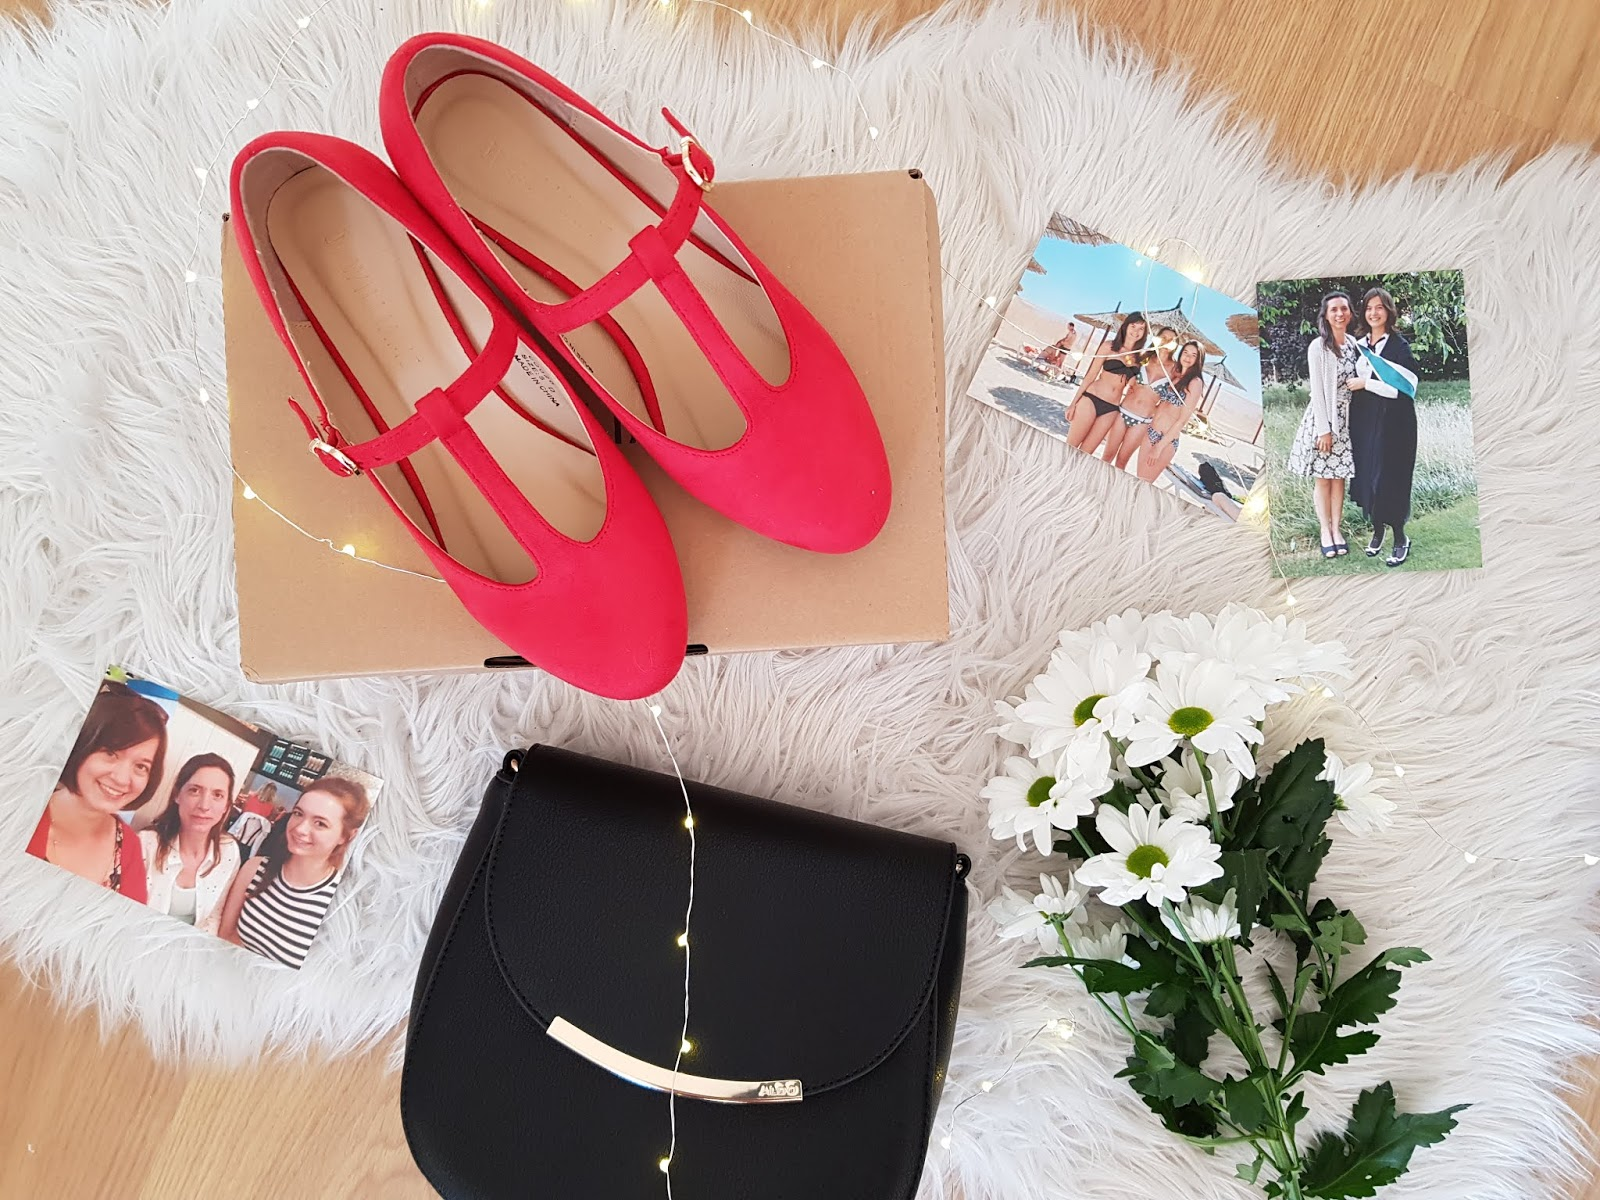 flatlay featuring red heeled shoes, flowers, family photos, and a black handbag